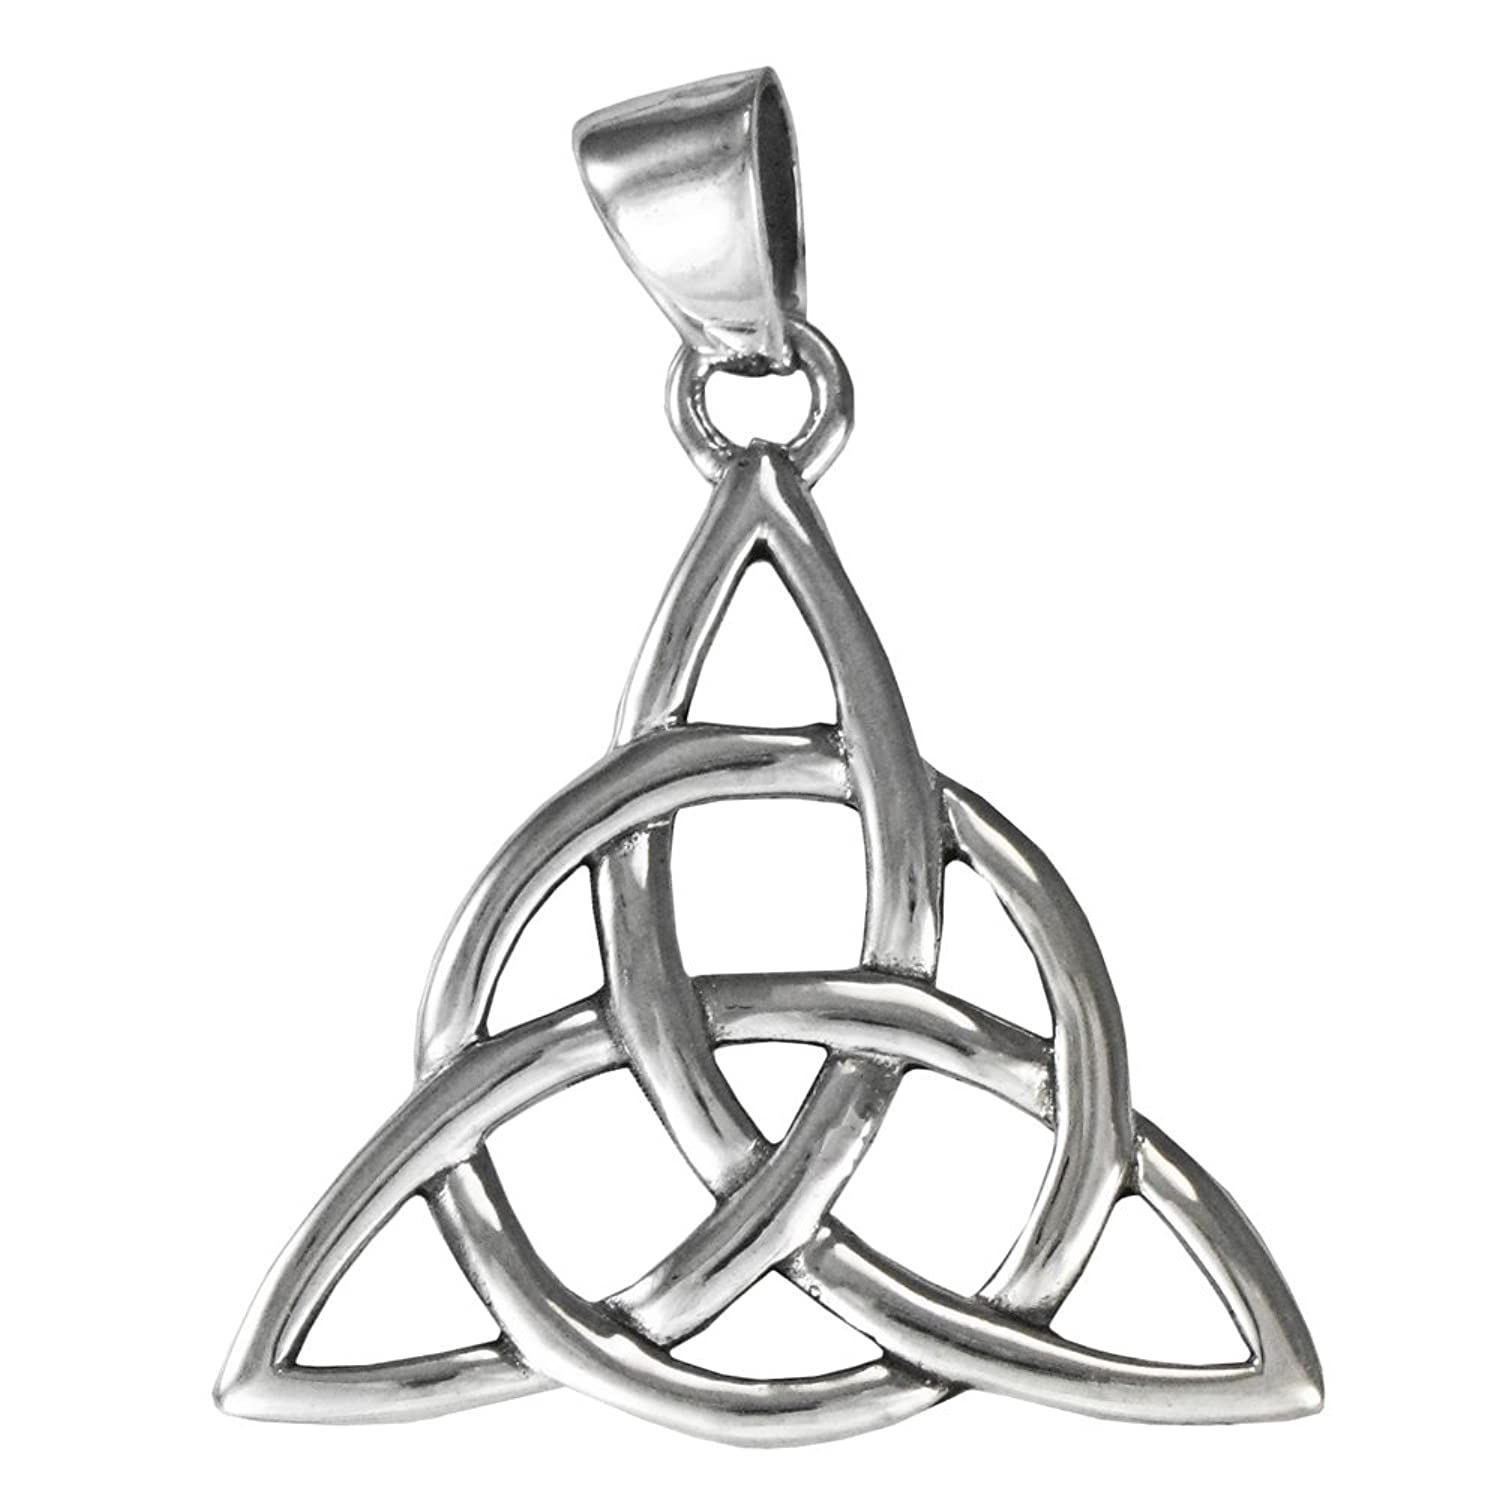 Amazon sterling silver celtic knot triquetra pendant 1 18 amazon sterling silver celtic knot triquetra pendant 1 18 inch tall jewelry biocorpaavc